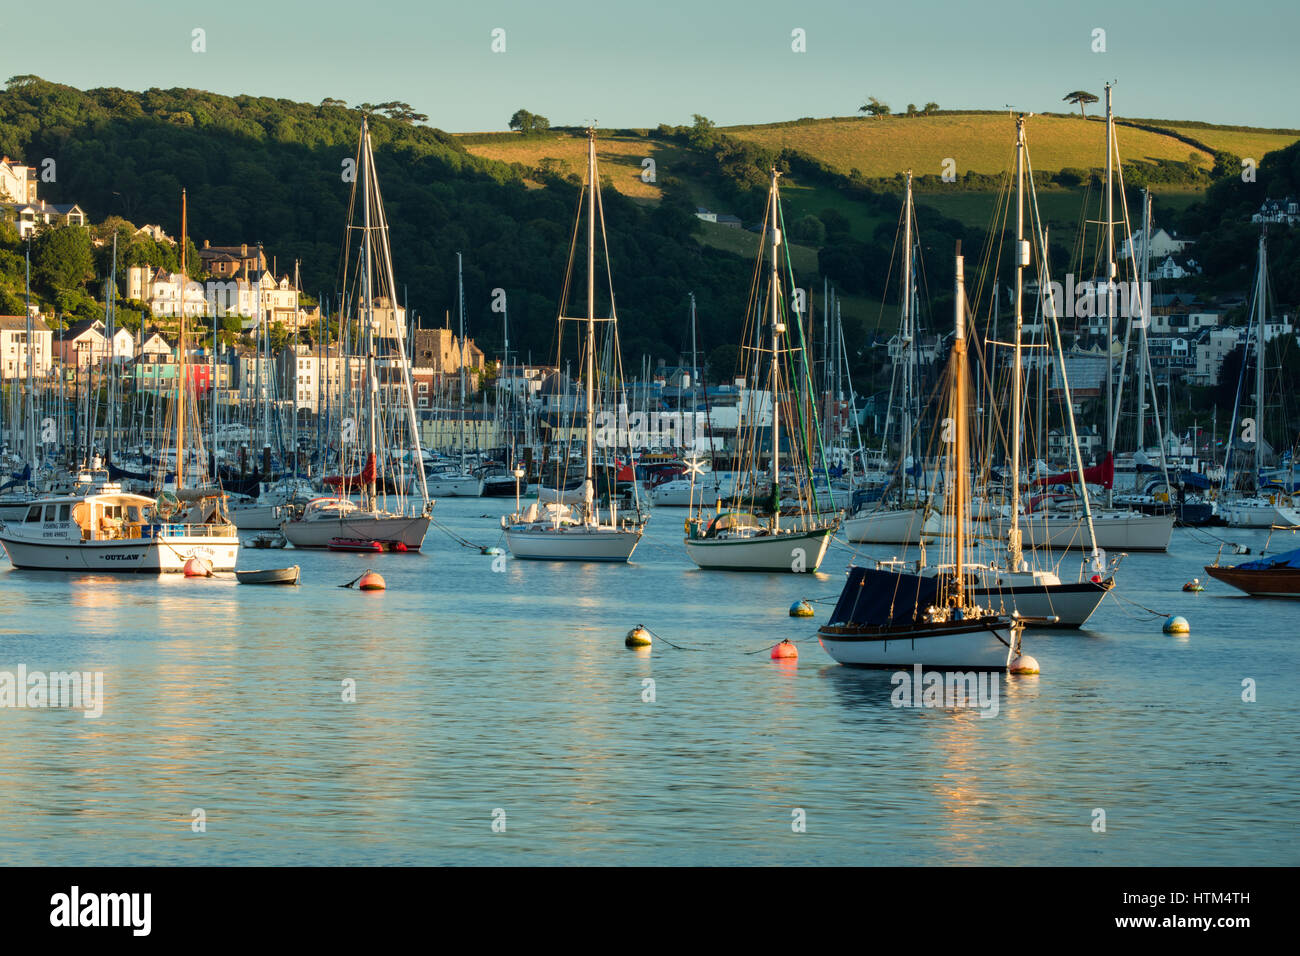 Boats anchored in the River Dart at Kingswear, Devon, England, UK - Stock Image